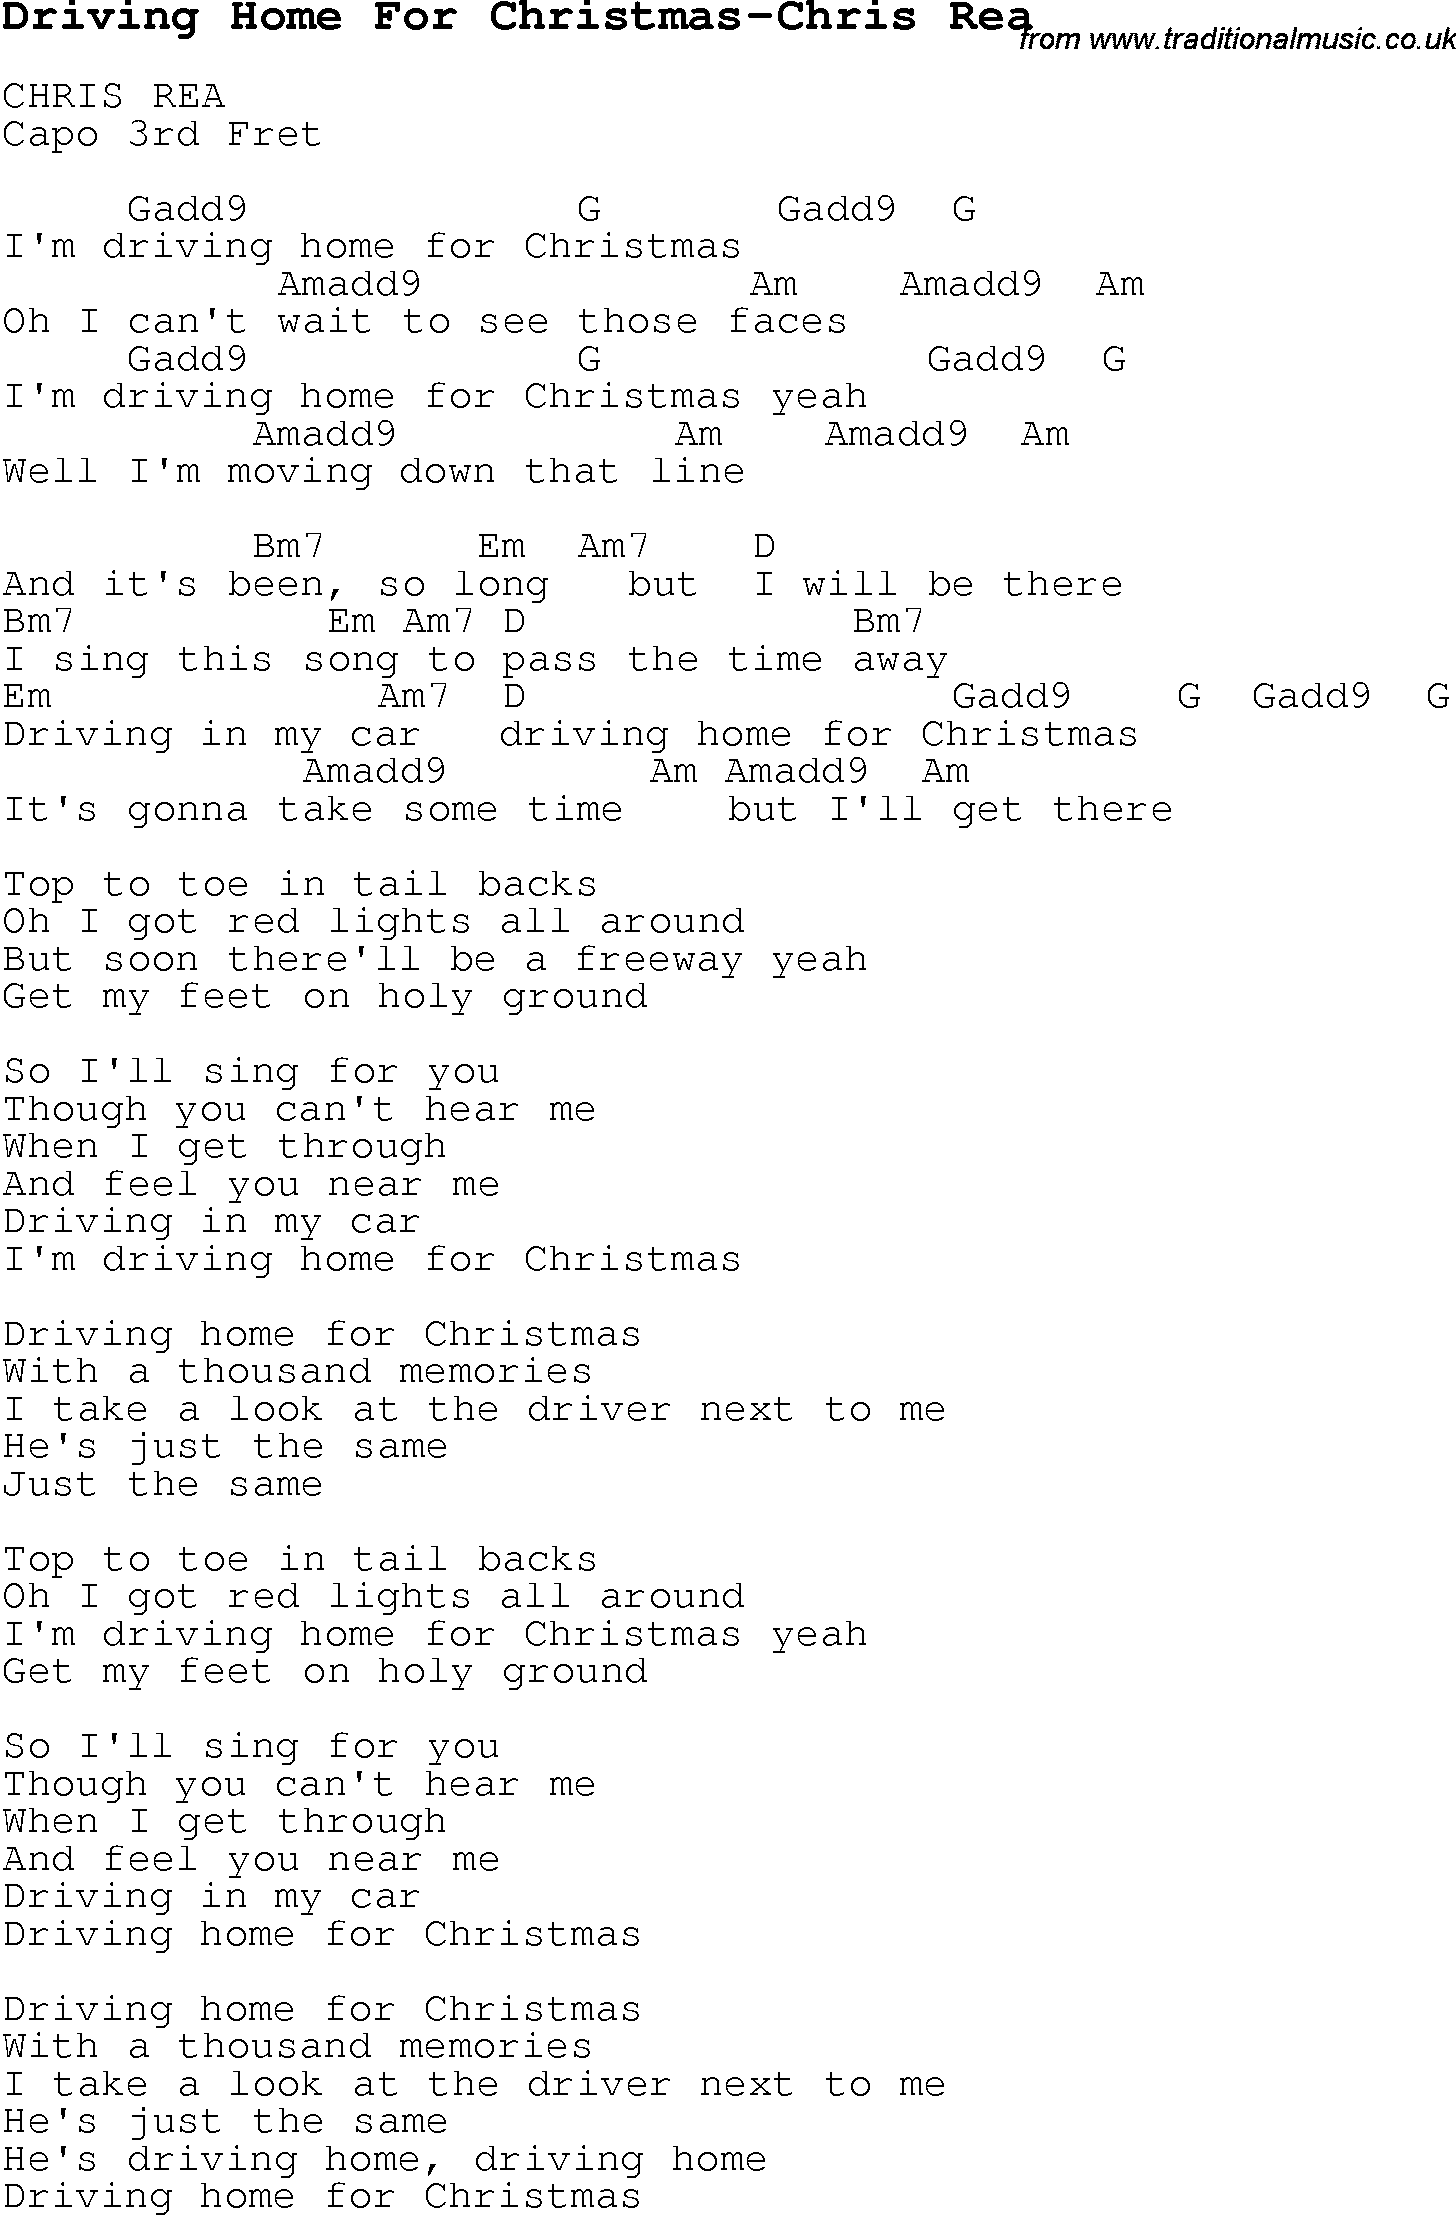 Christmas Carolsong Lyrics With Chords For Driving Home For